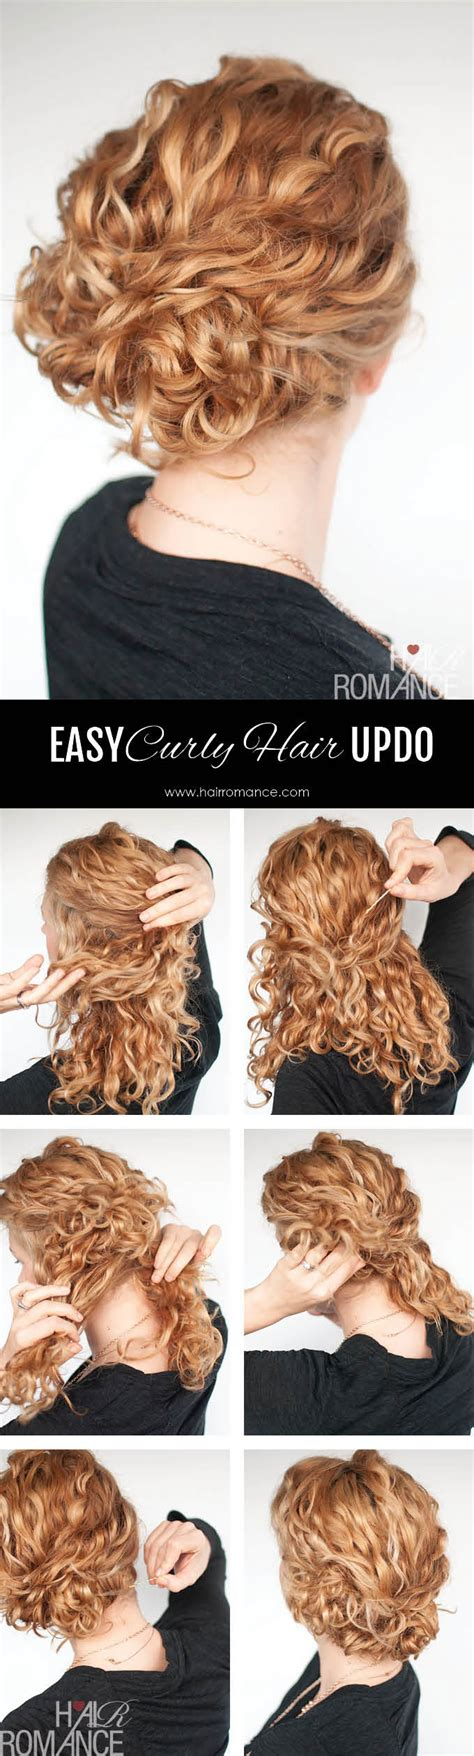 Hairstyles For Hair Updos Easy by Easy Updo Hairstyle Tutorial For Curly Hair Hair